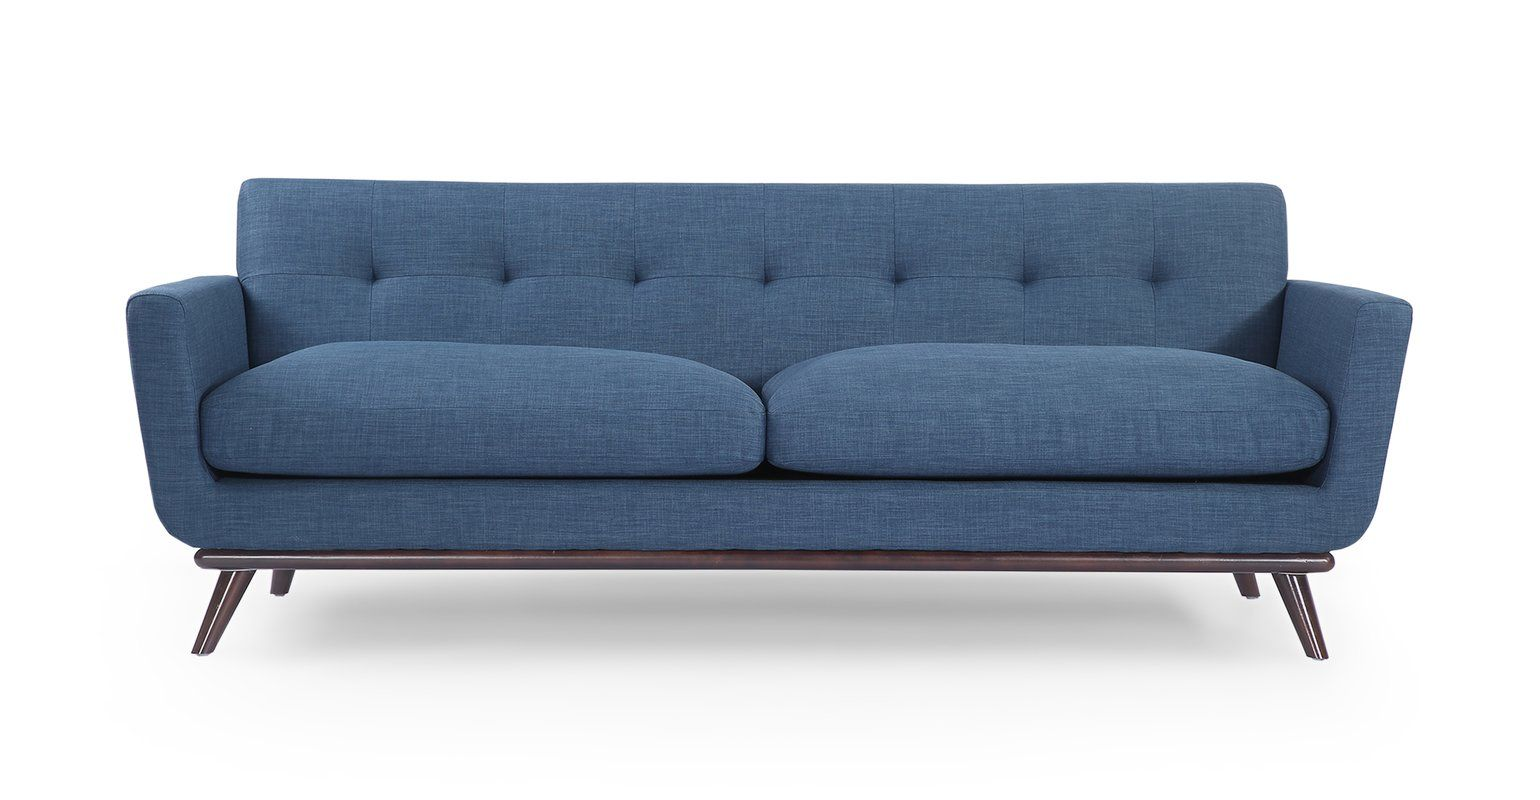 Luther Mid Century Modern Vintage Sofa With Wood Legs Mid Century Modern Sofa Vintage Sofa Vintage Modern Sofa